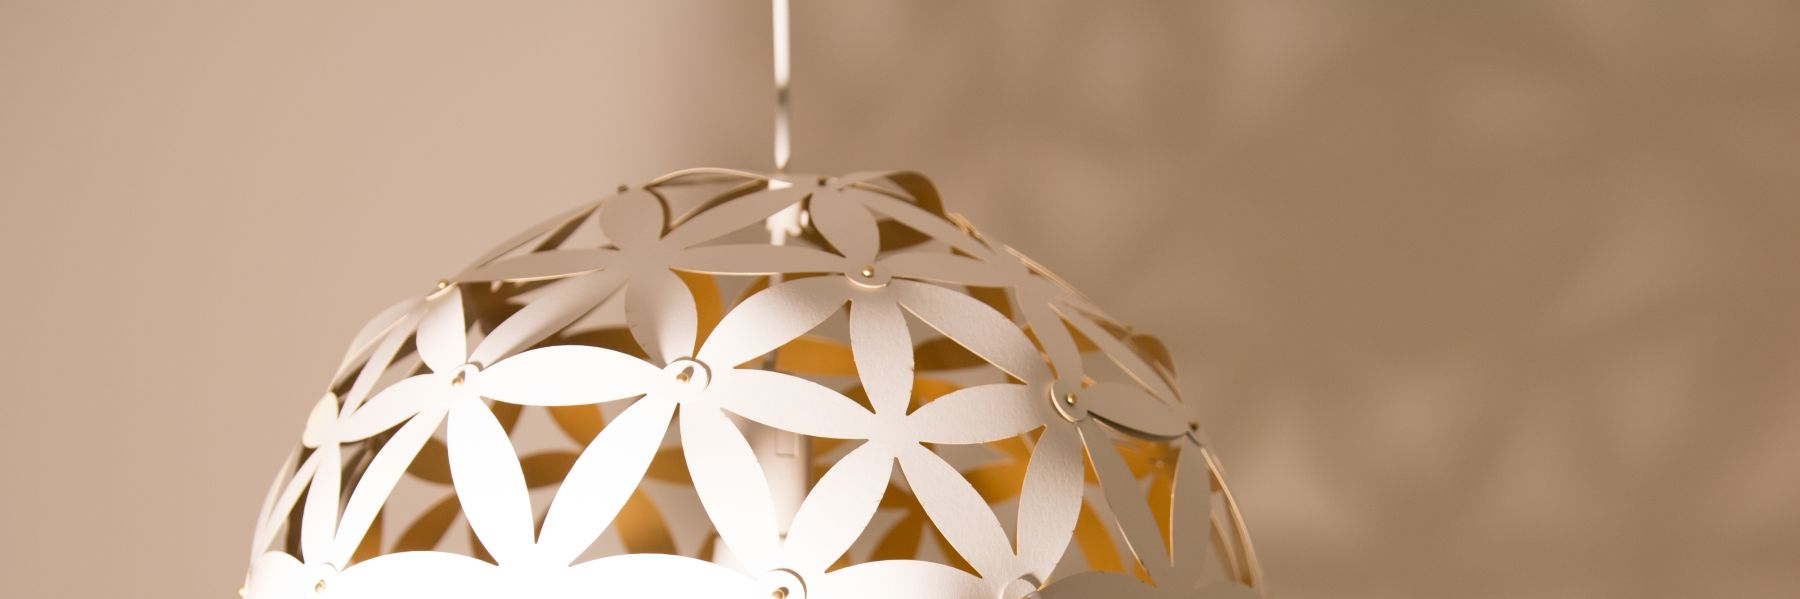 Our pendant lights - read more.